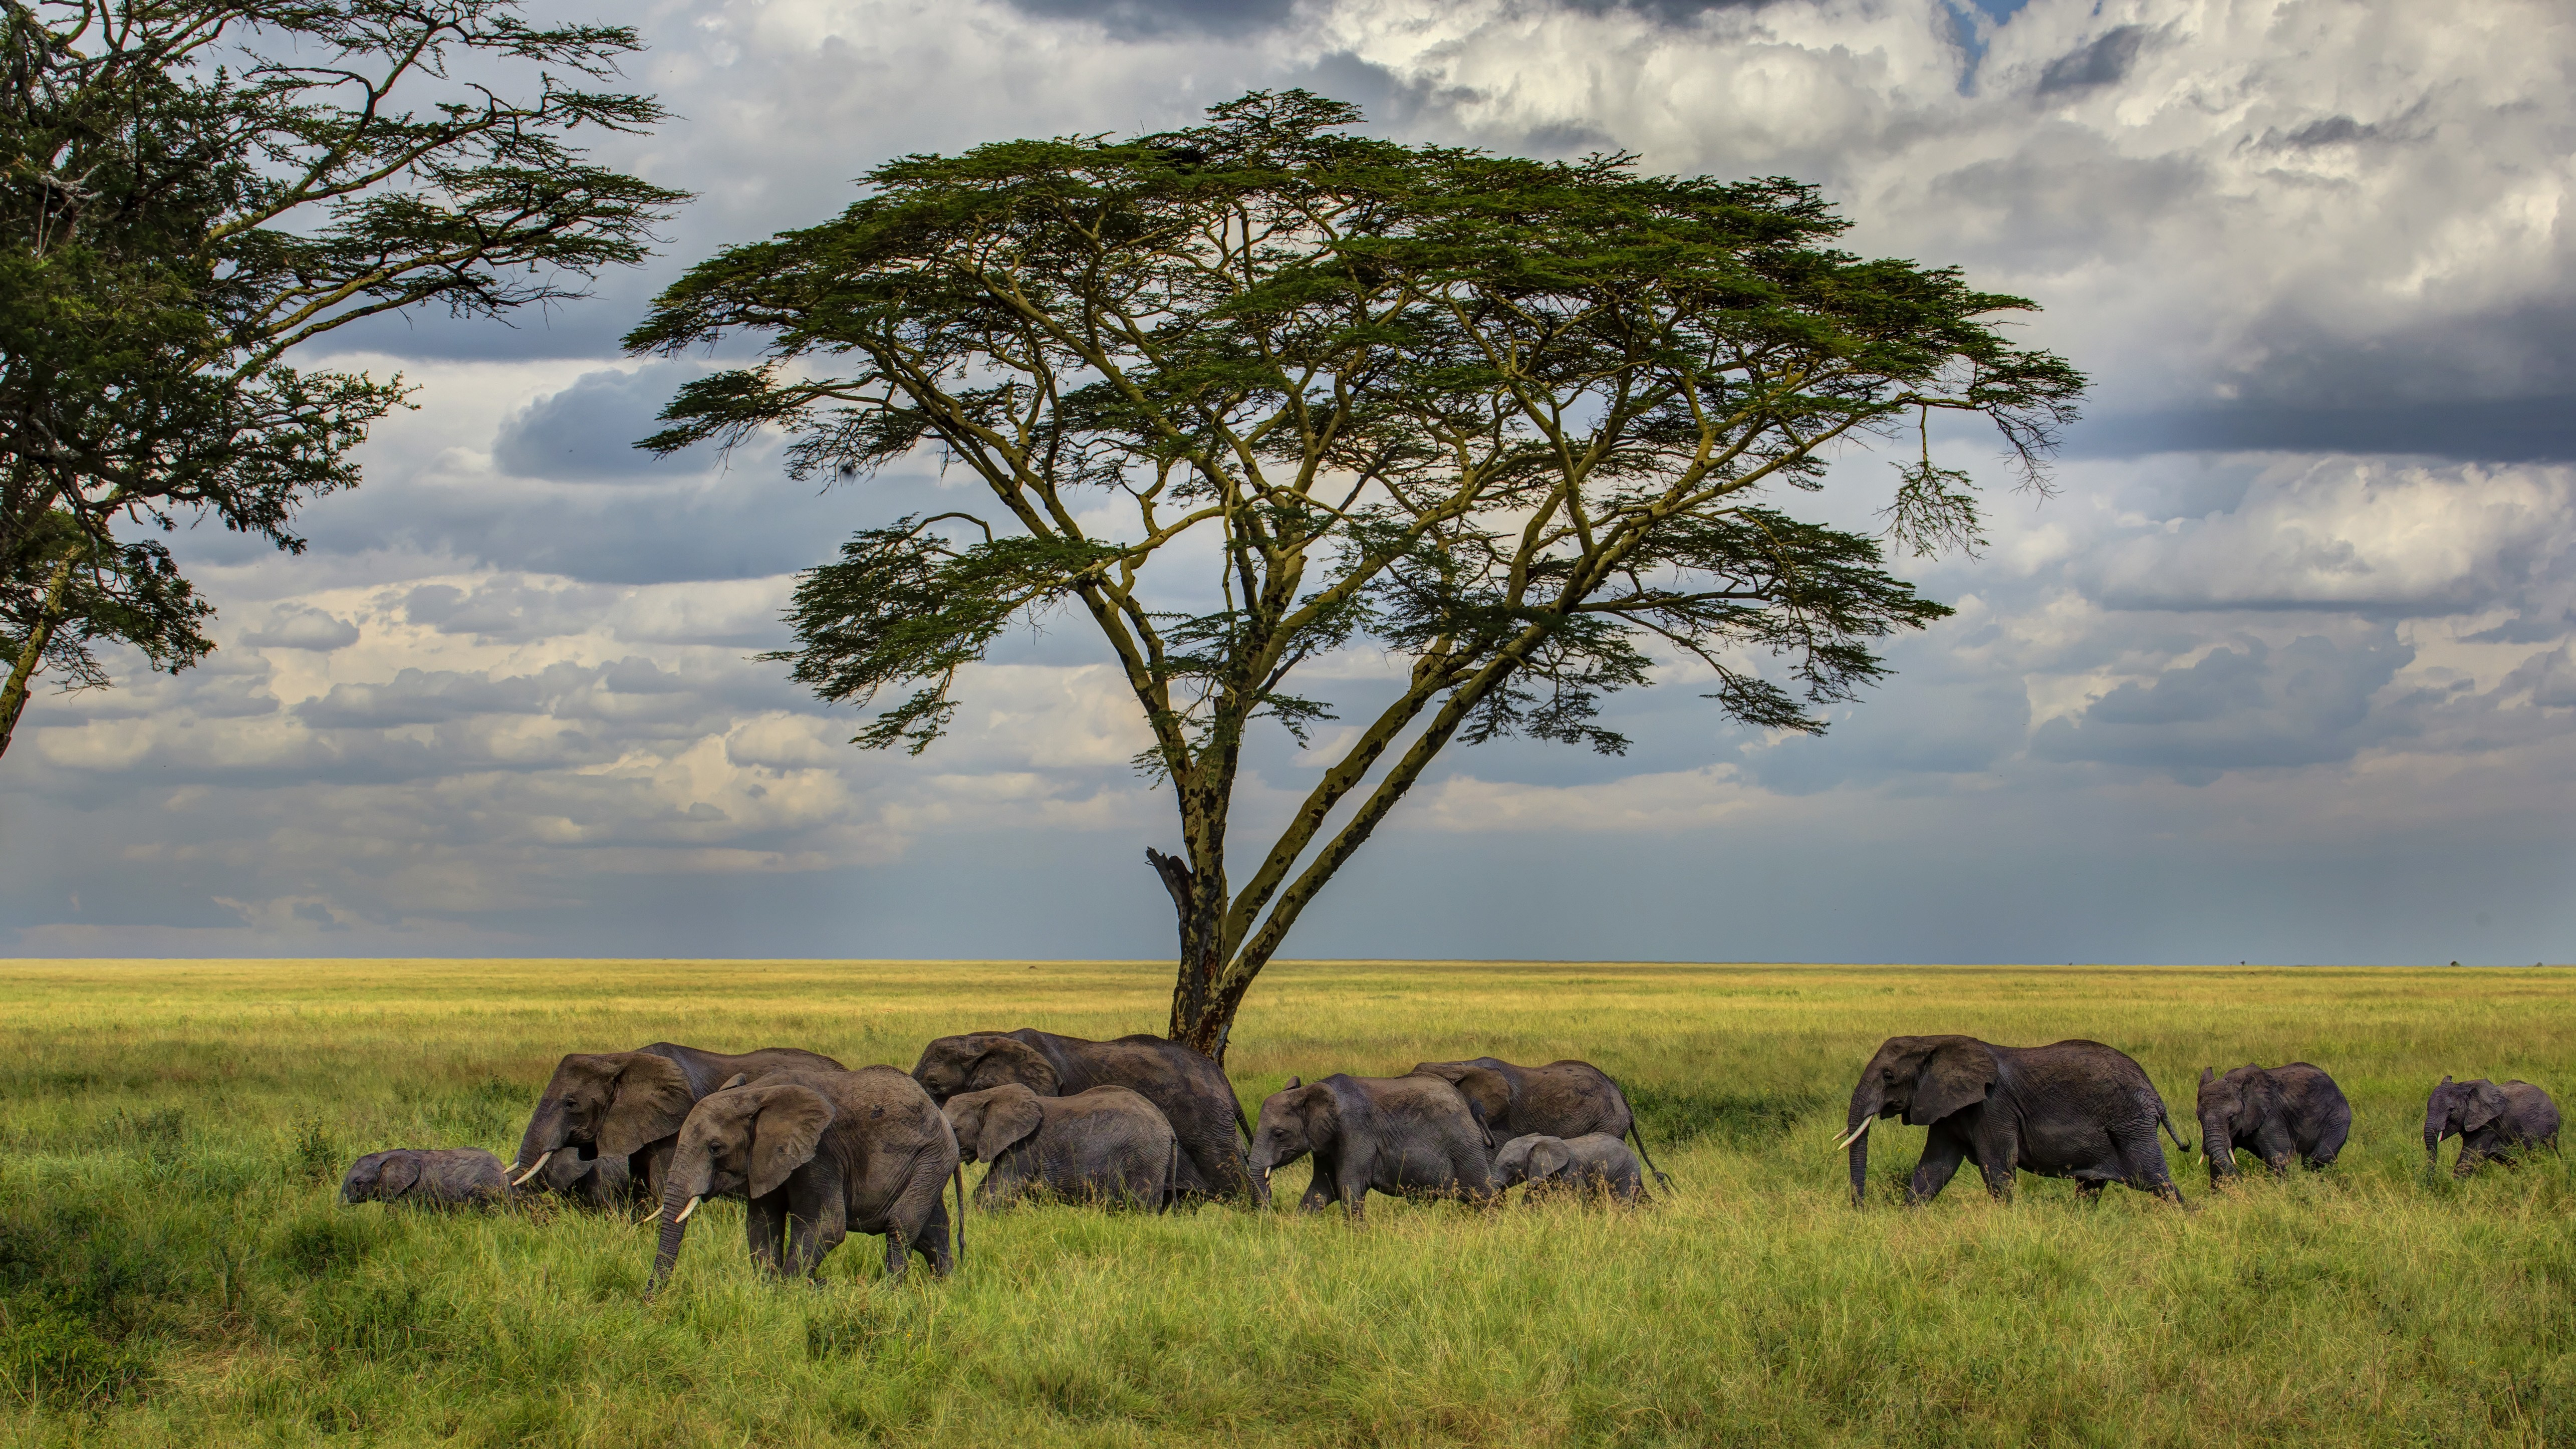 Savana Hd Elephant Wallpaper Animals Wild Elephant Savanna